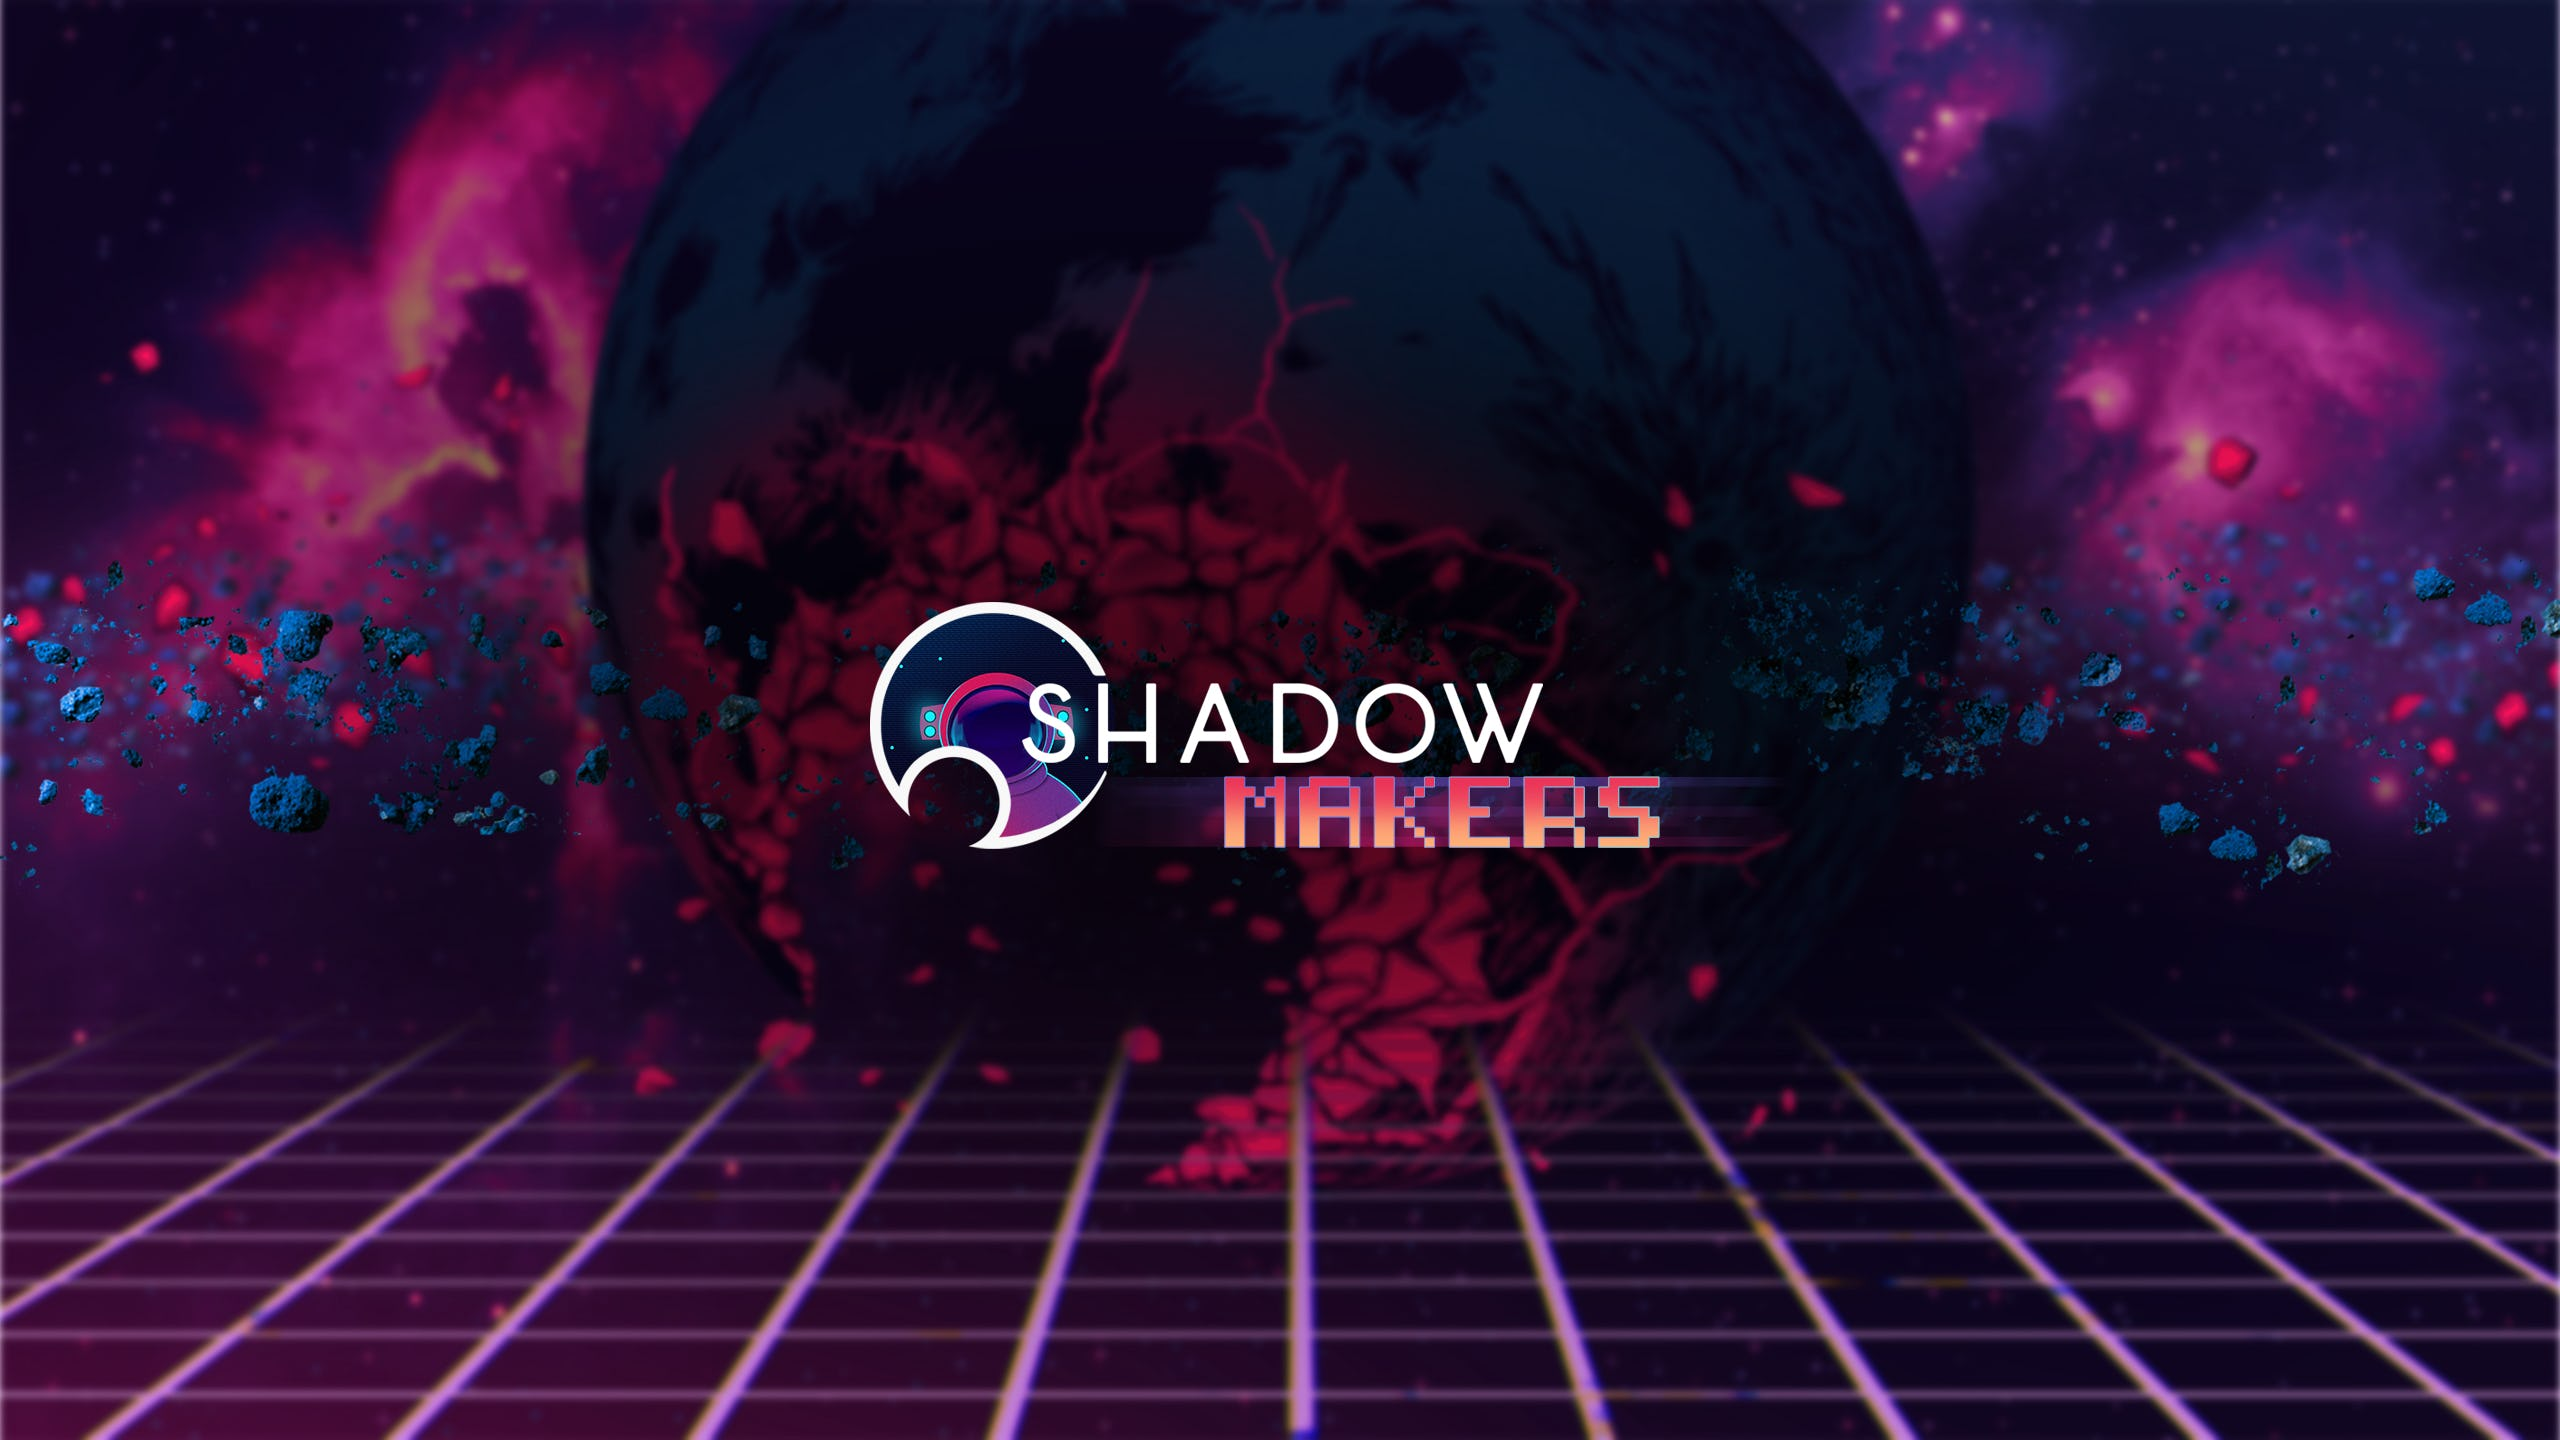 Quand Shadow Makers rime avec grand cœur